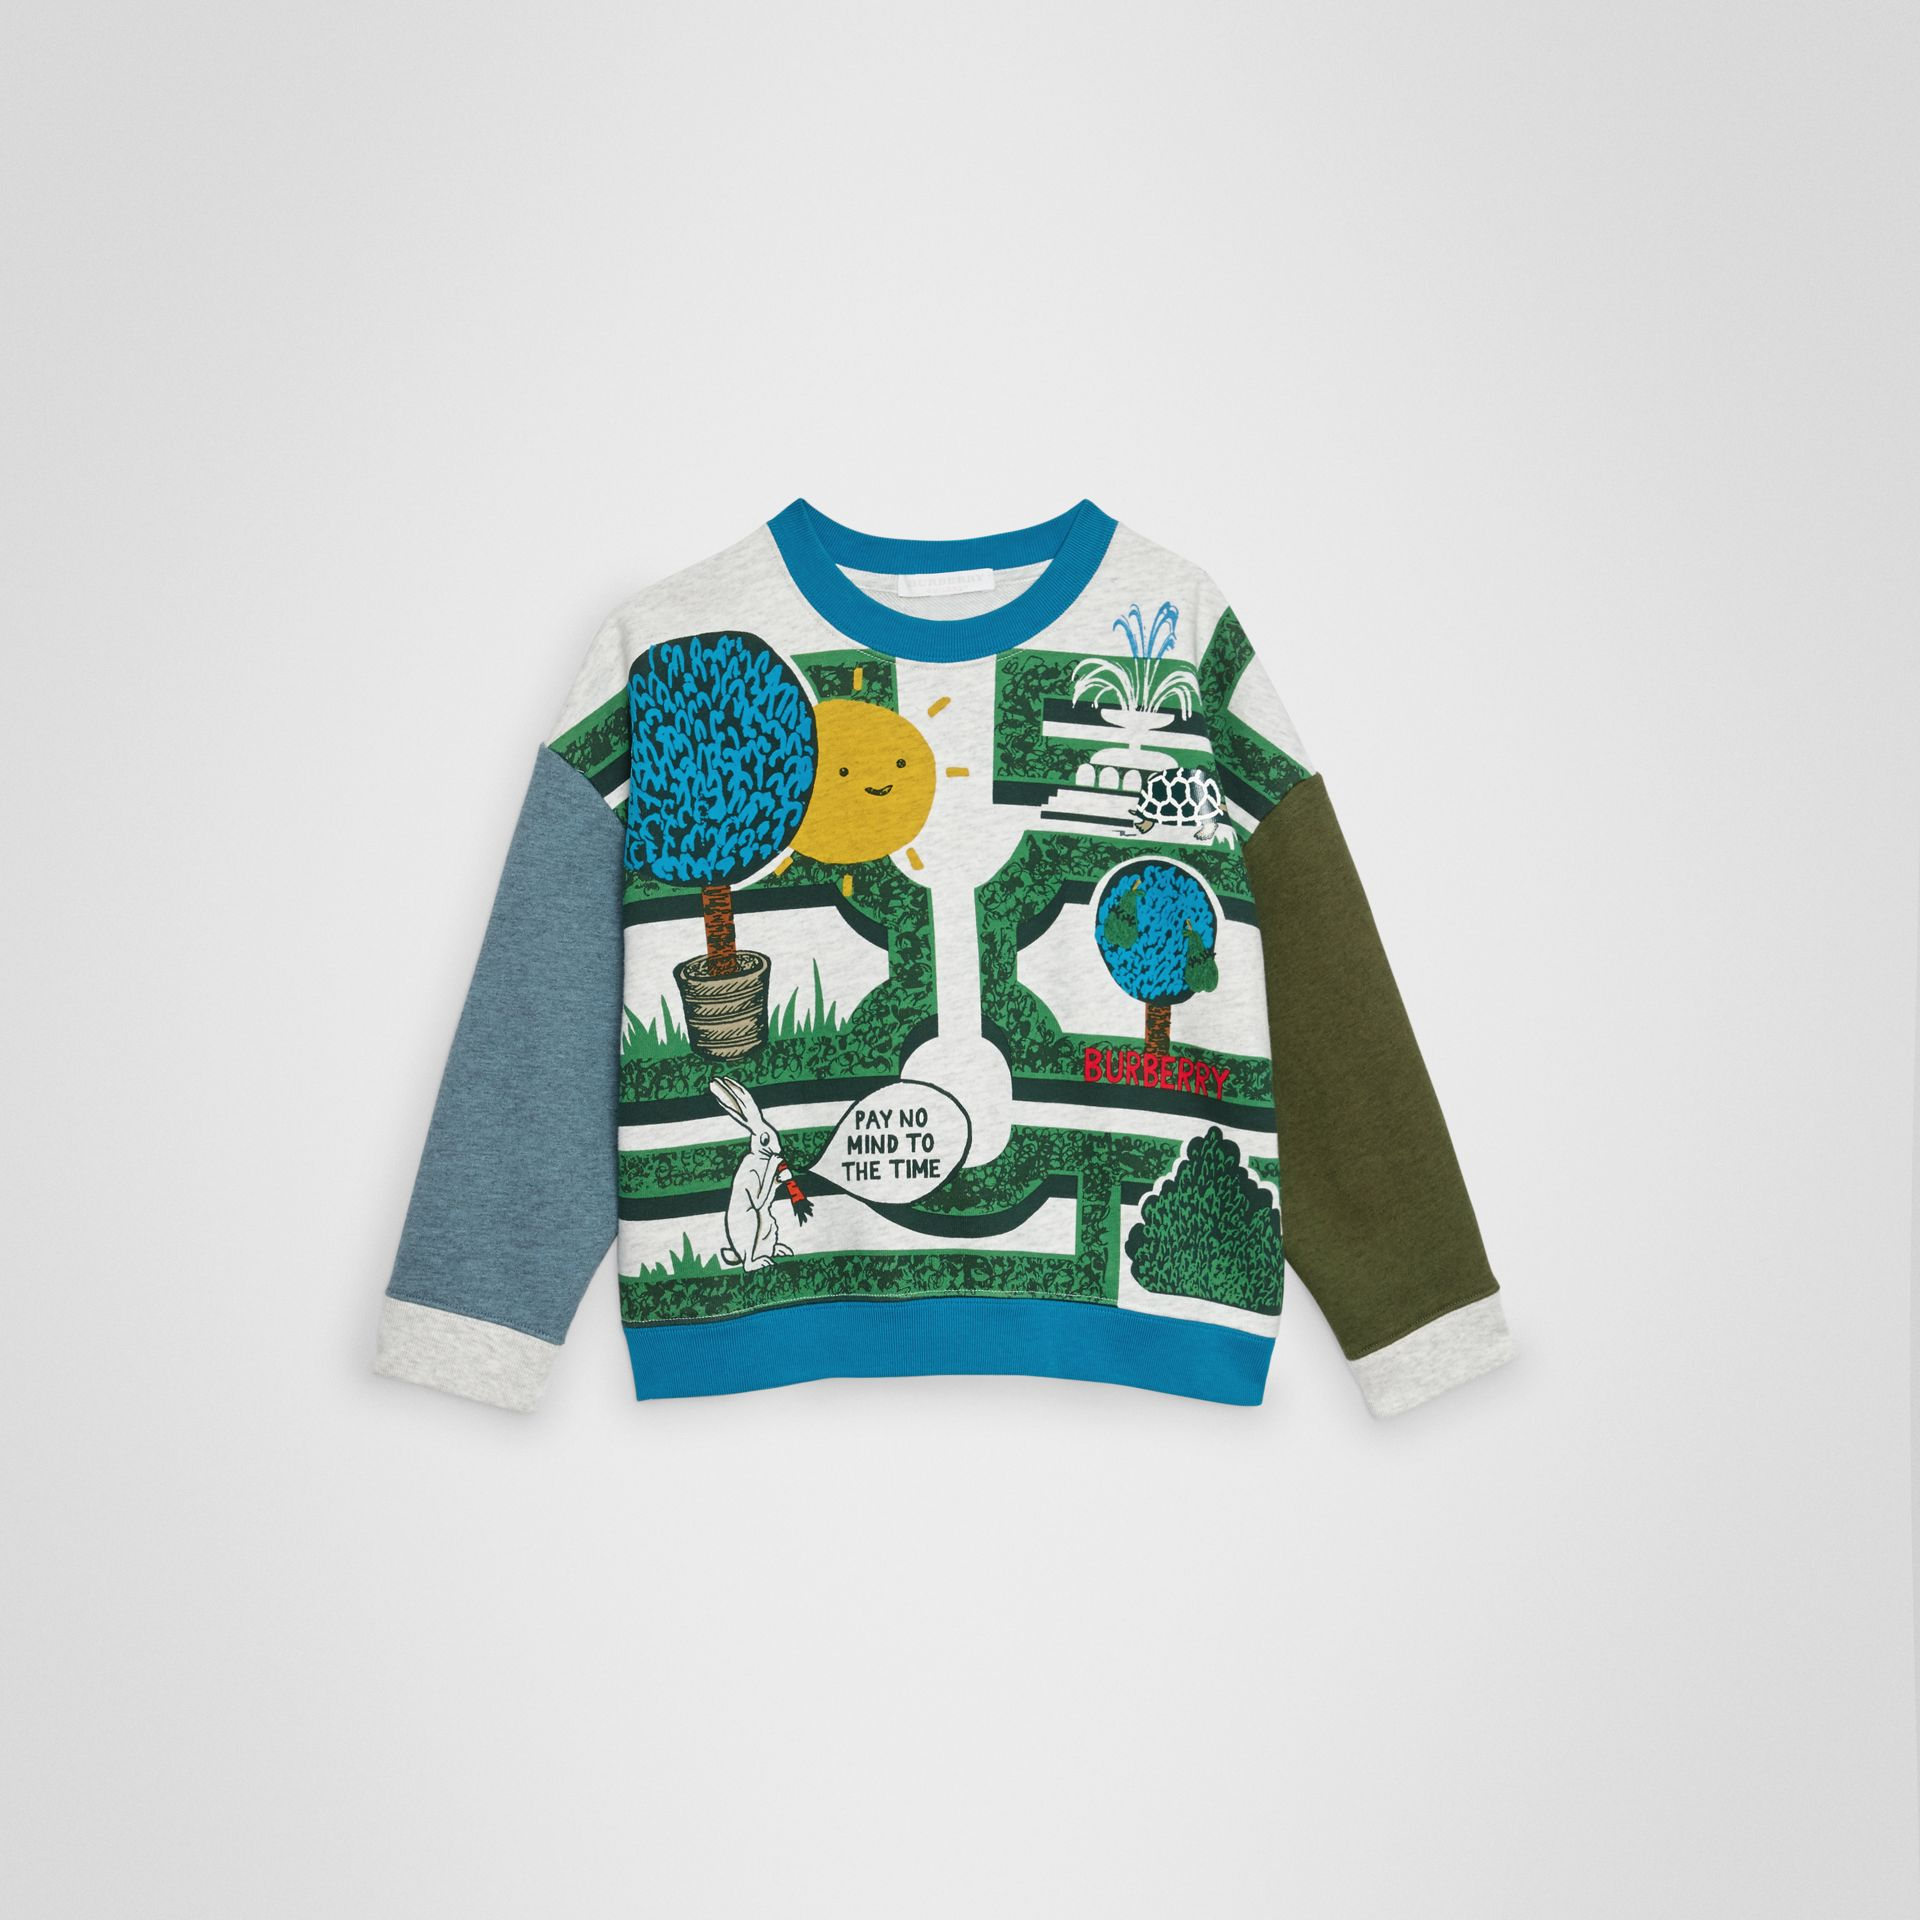 Hedge Maze Print Cotton Sweatshirt in Multicolour | Burberry Australia - gallery image 0